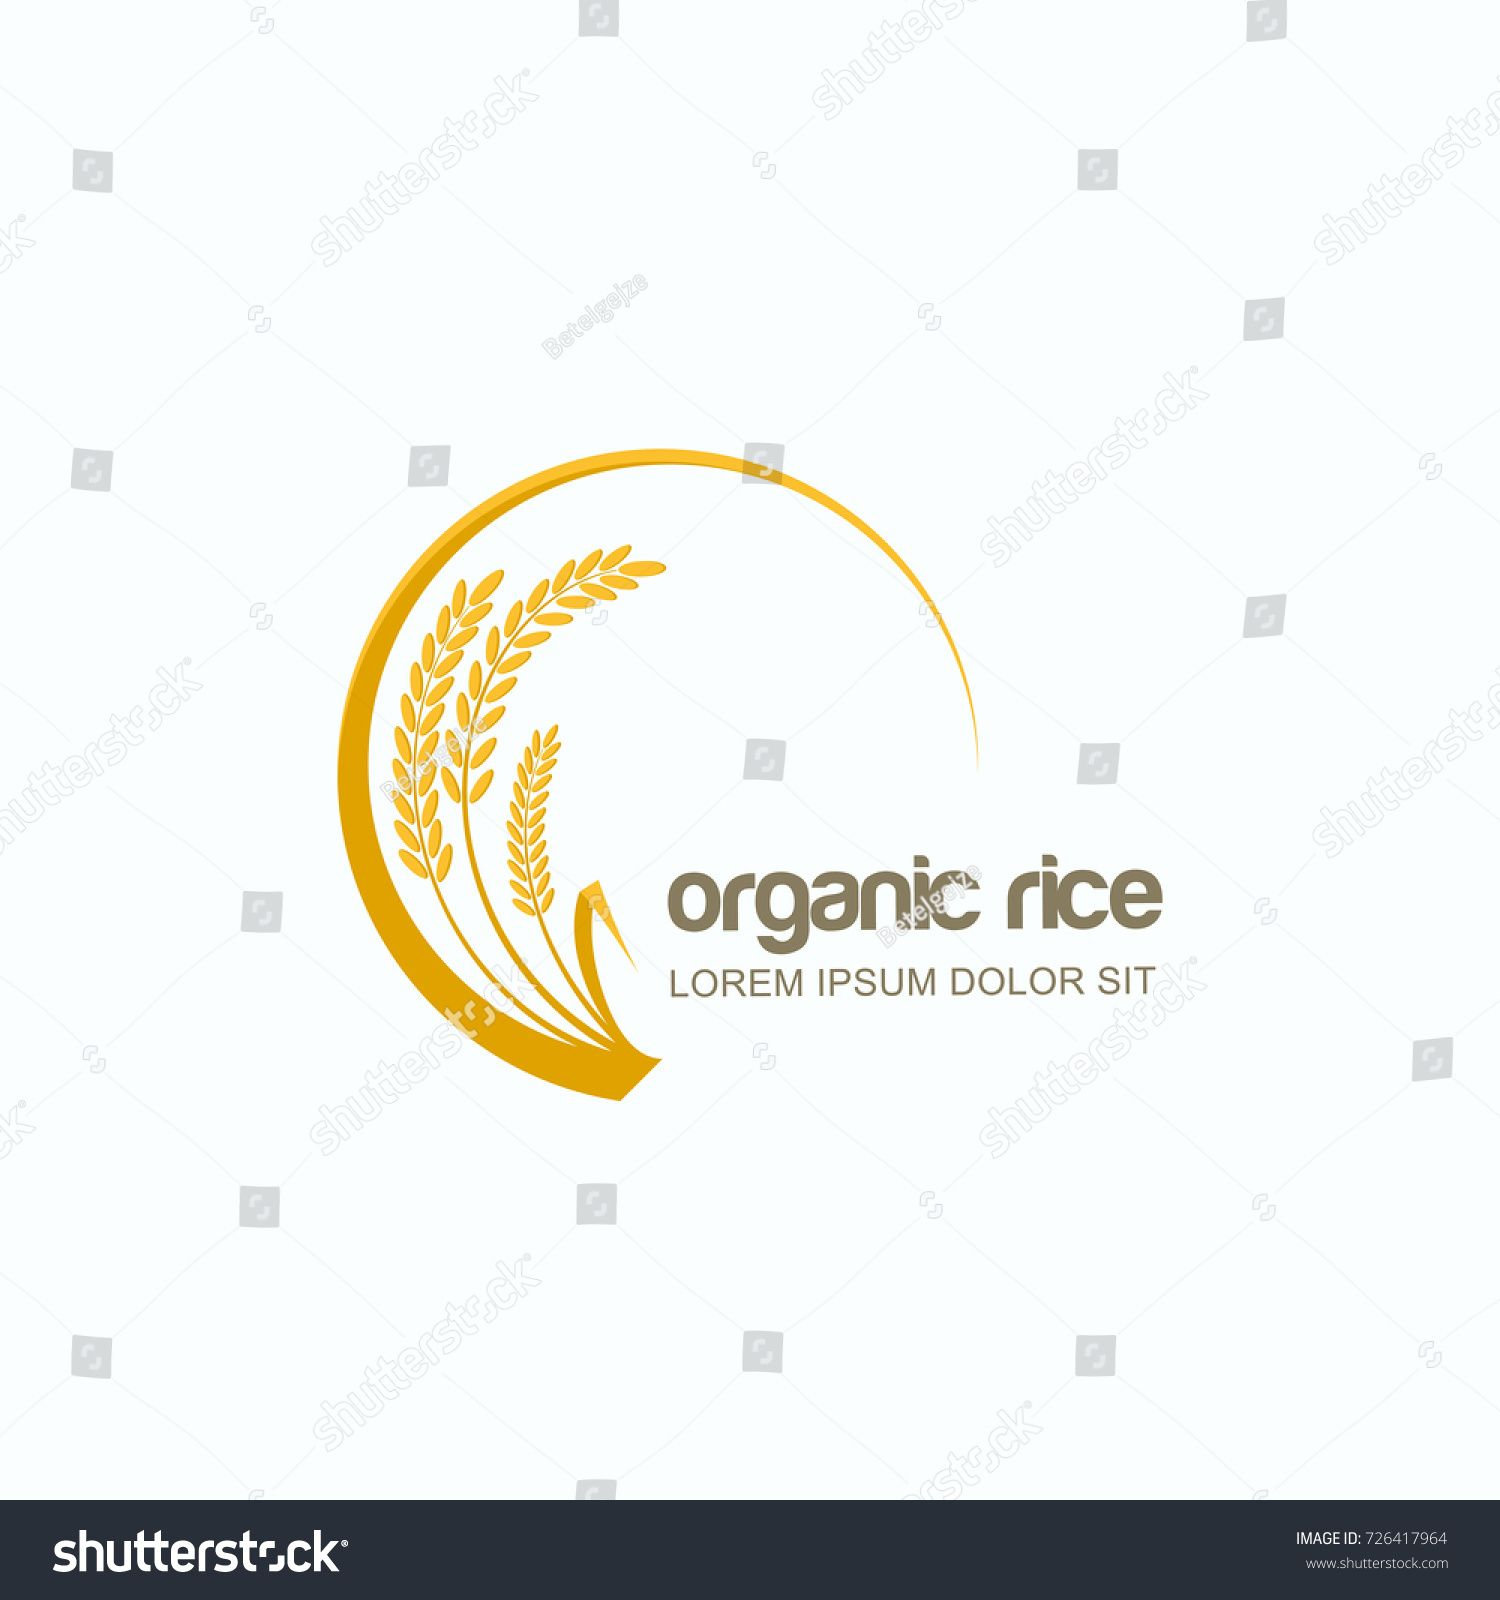 vector logo label or package circle emblem with yellow rice wheat rye grains design template for asian agriculture organic cereal products  [ 1500 x 1600 Pixel ]